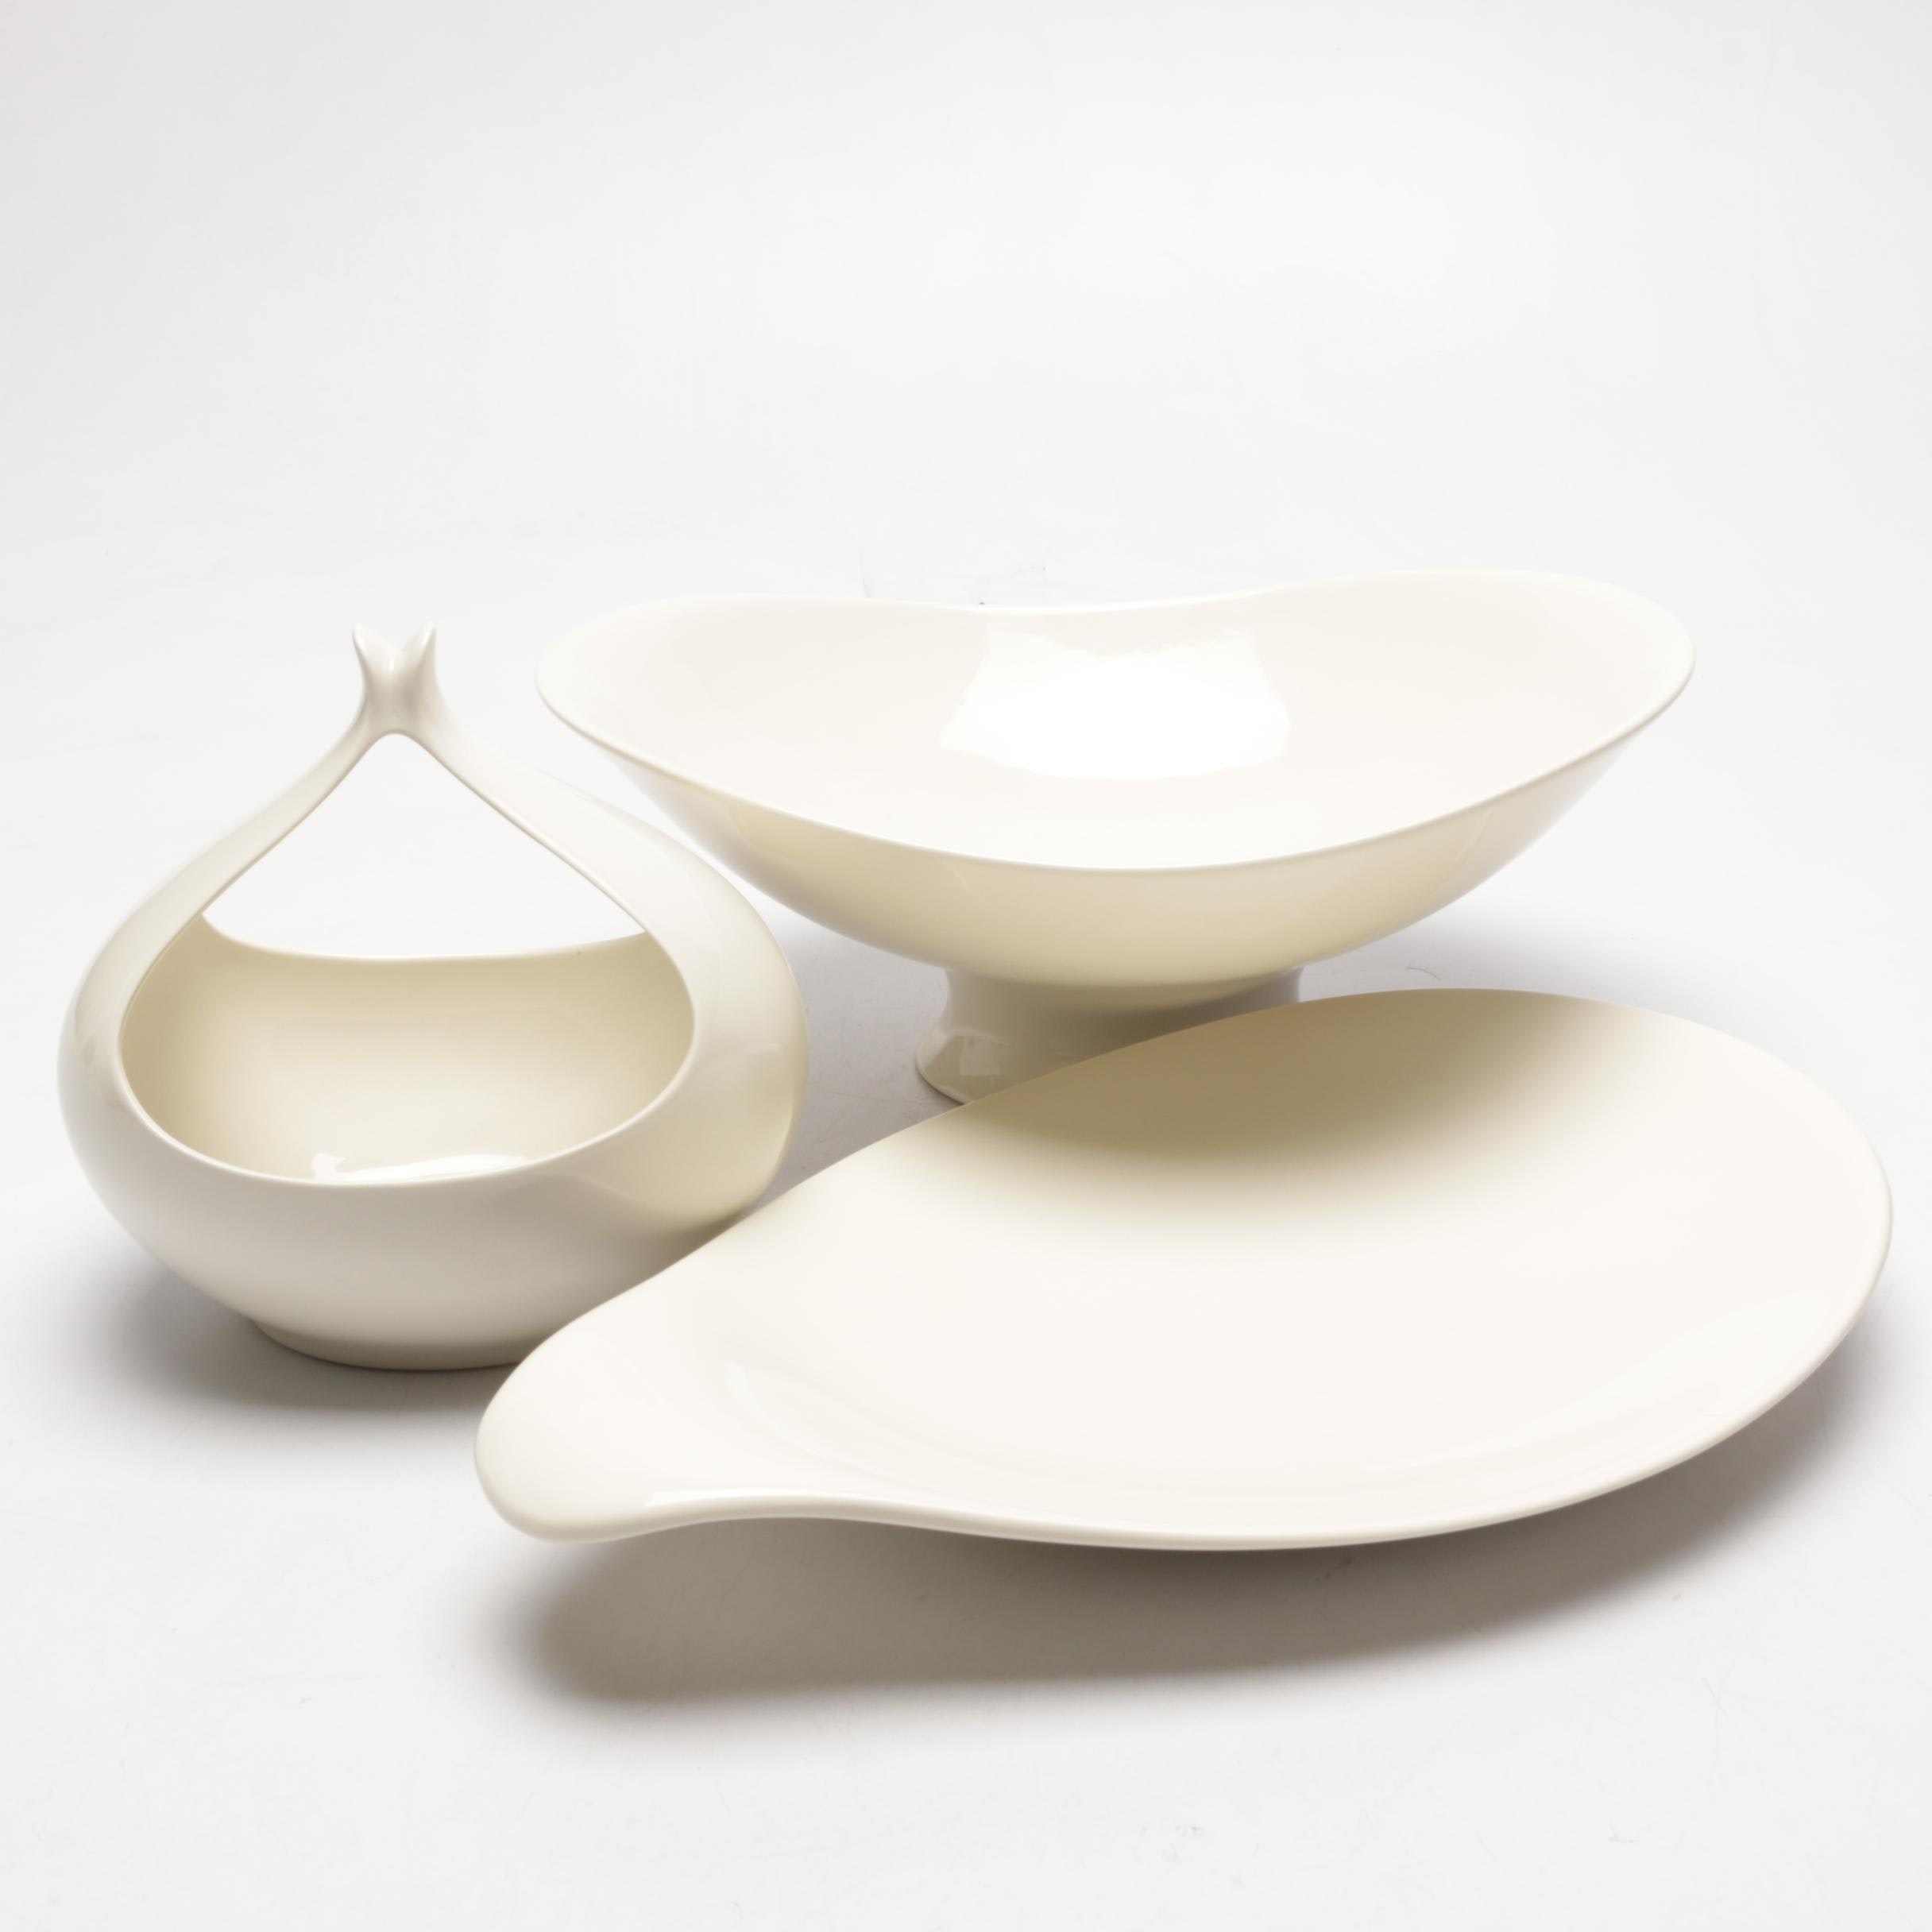 Eva Zeisel Classic Century Serving Dishes for Crate & Barrel in Ivory